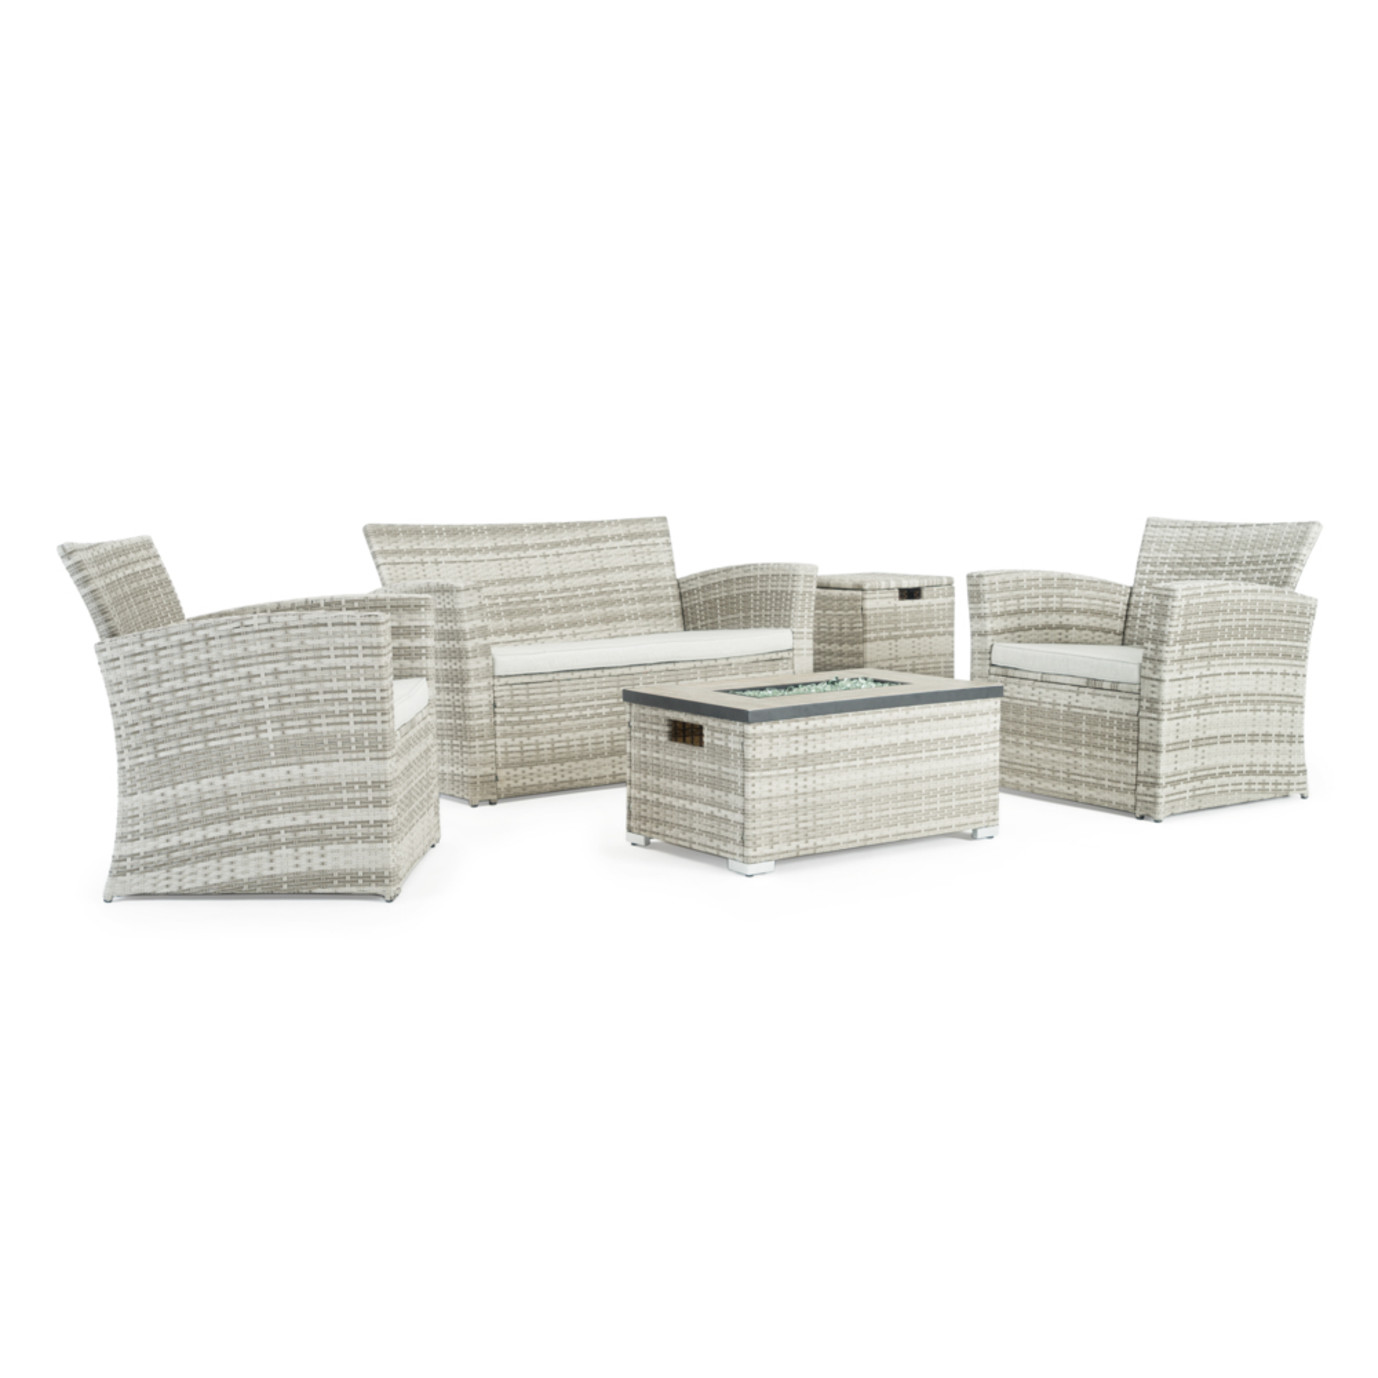 Sego Lily™ Magna 4 Piece Fire Seating Set - Gray